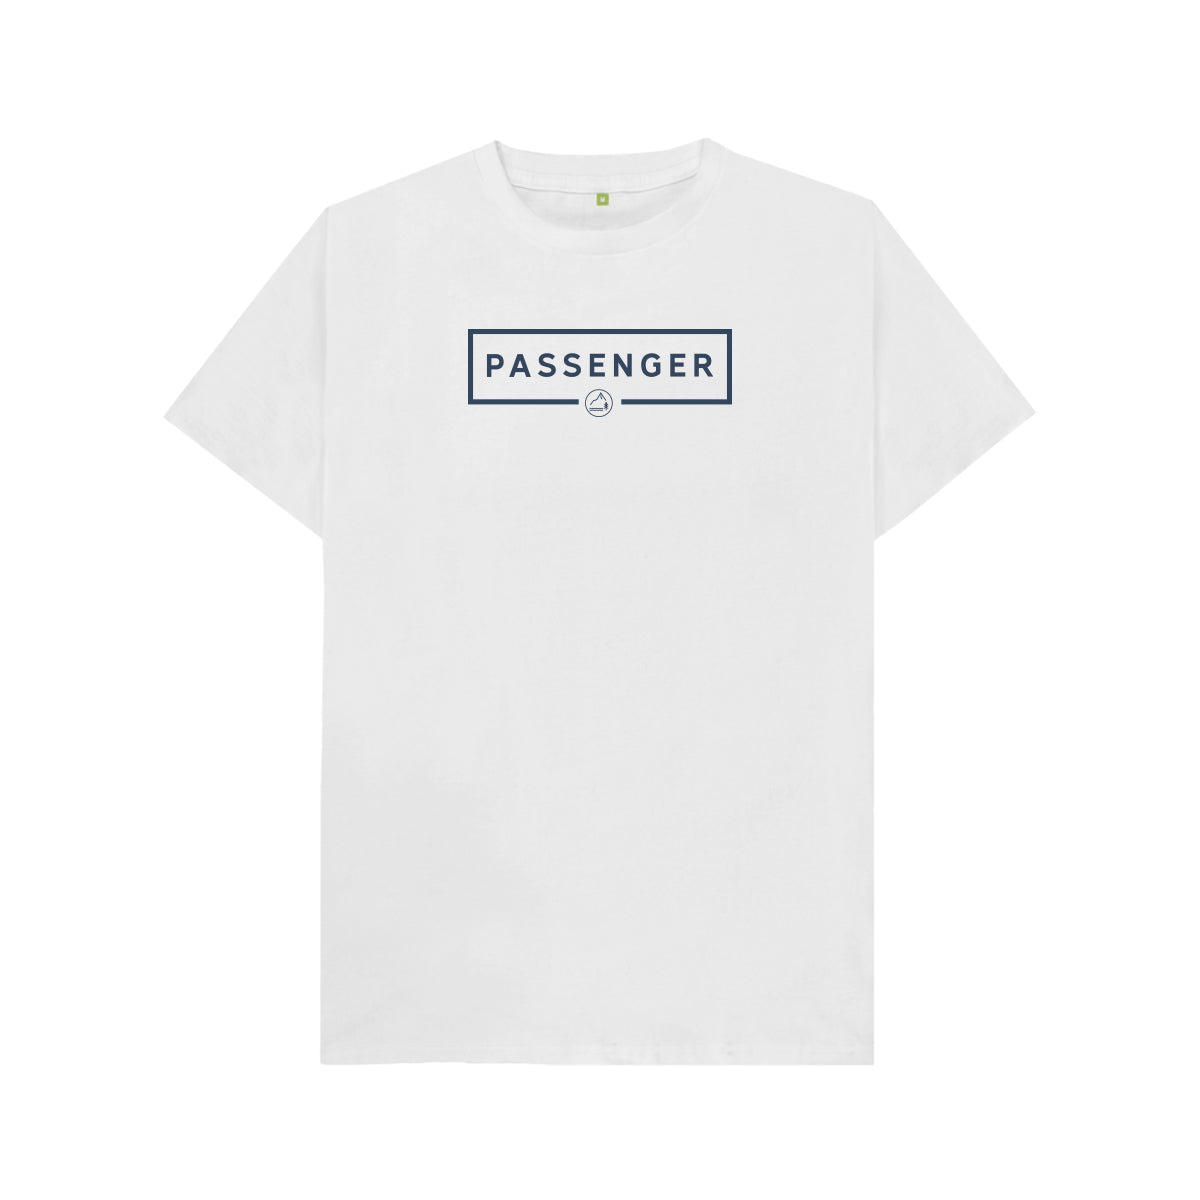 Single Fin T-Shirt - White image 5